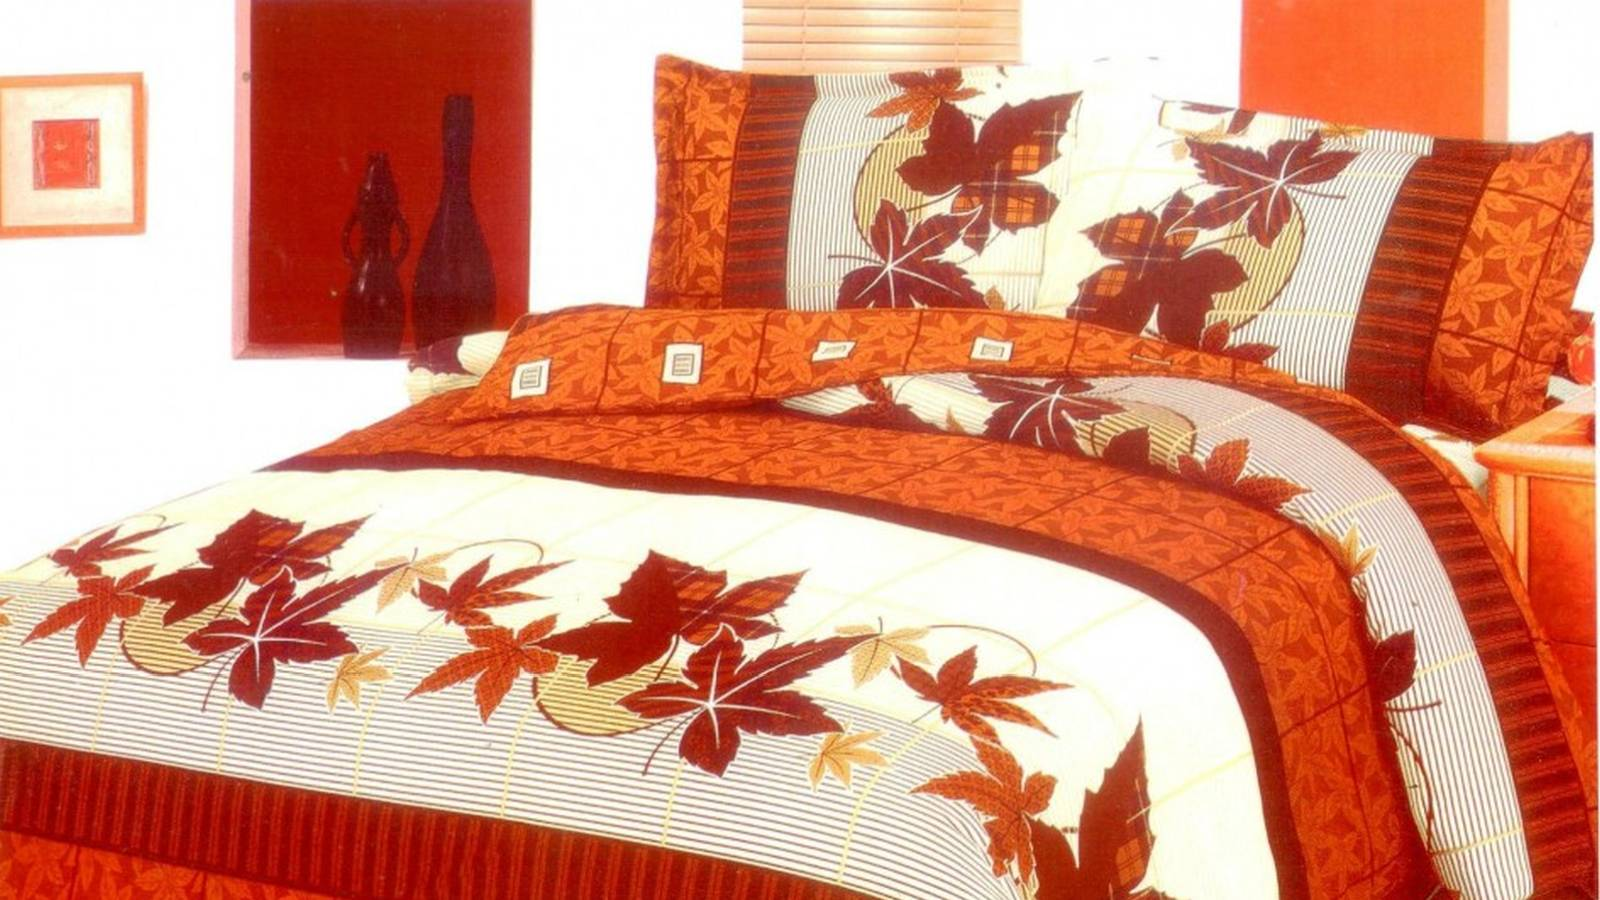 Autumn bedding designs in the bedroom homedizz for Home designs comforter